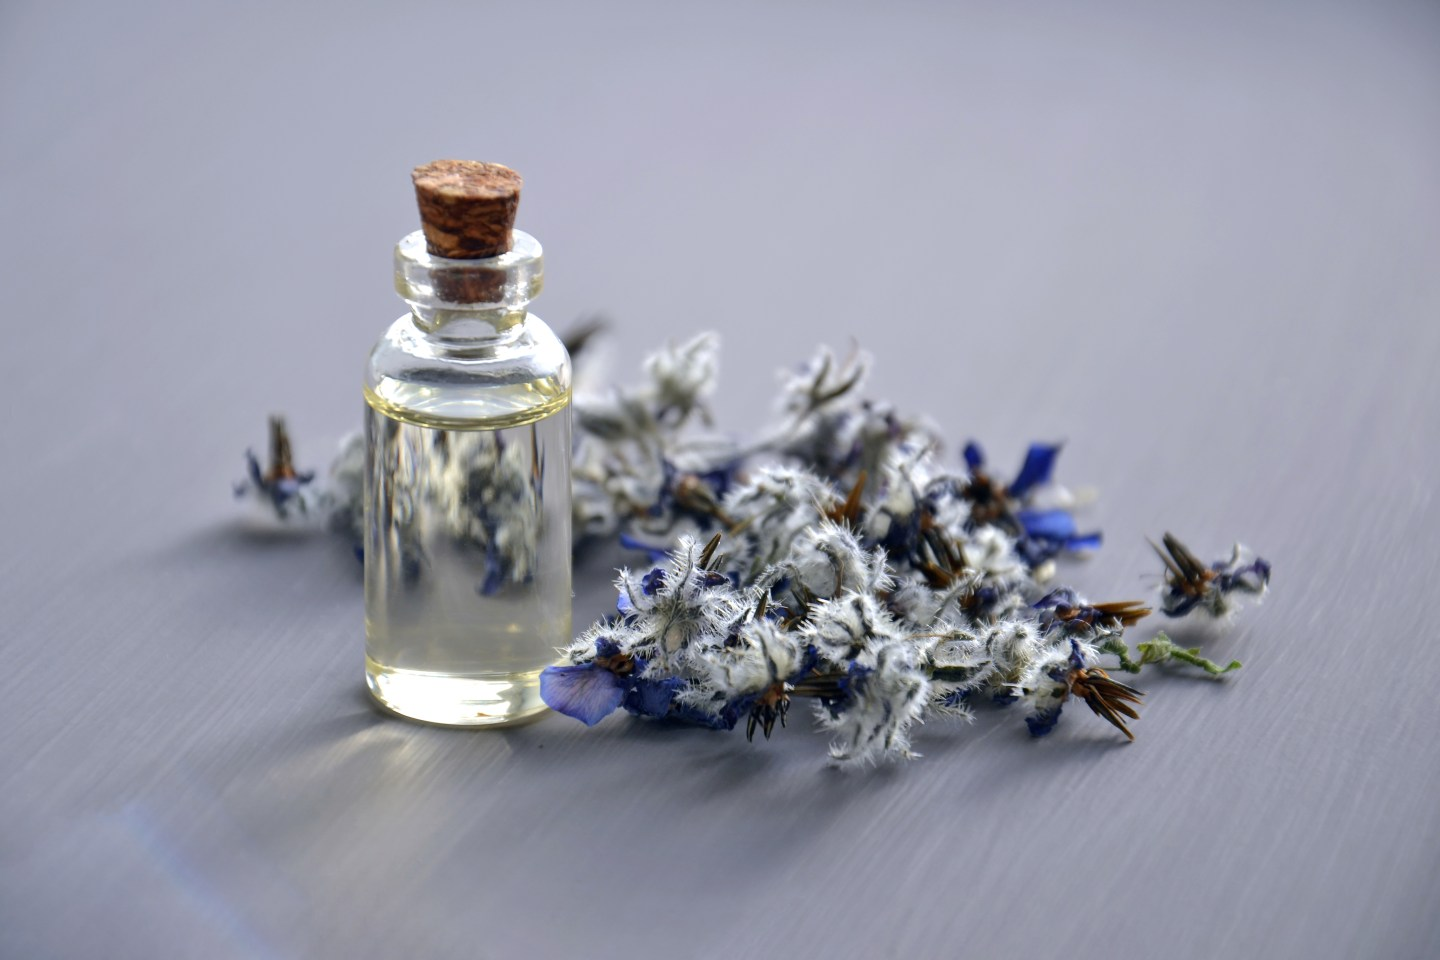 pexels photo 932577 - Sustainable Essential Oils Are Not Cheap